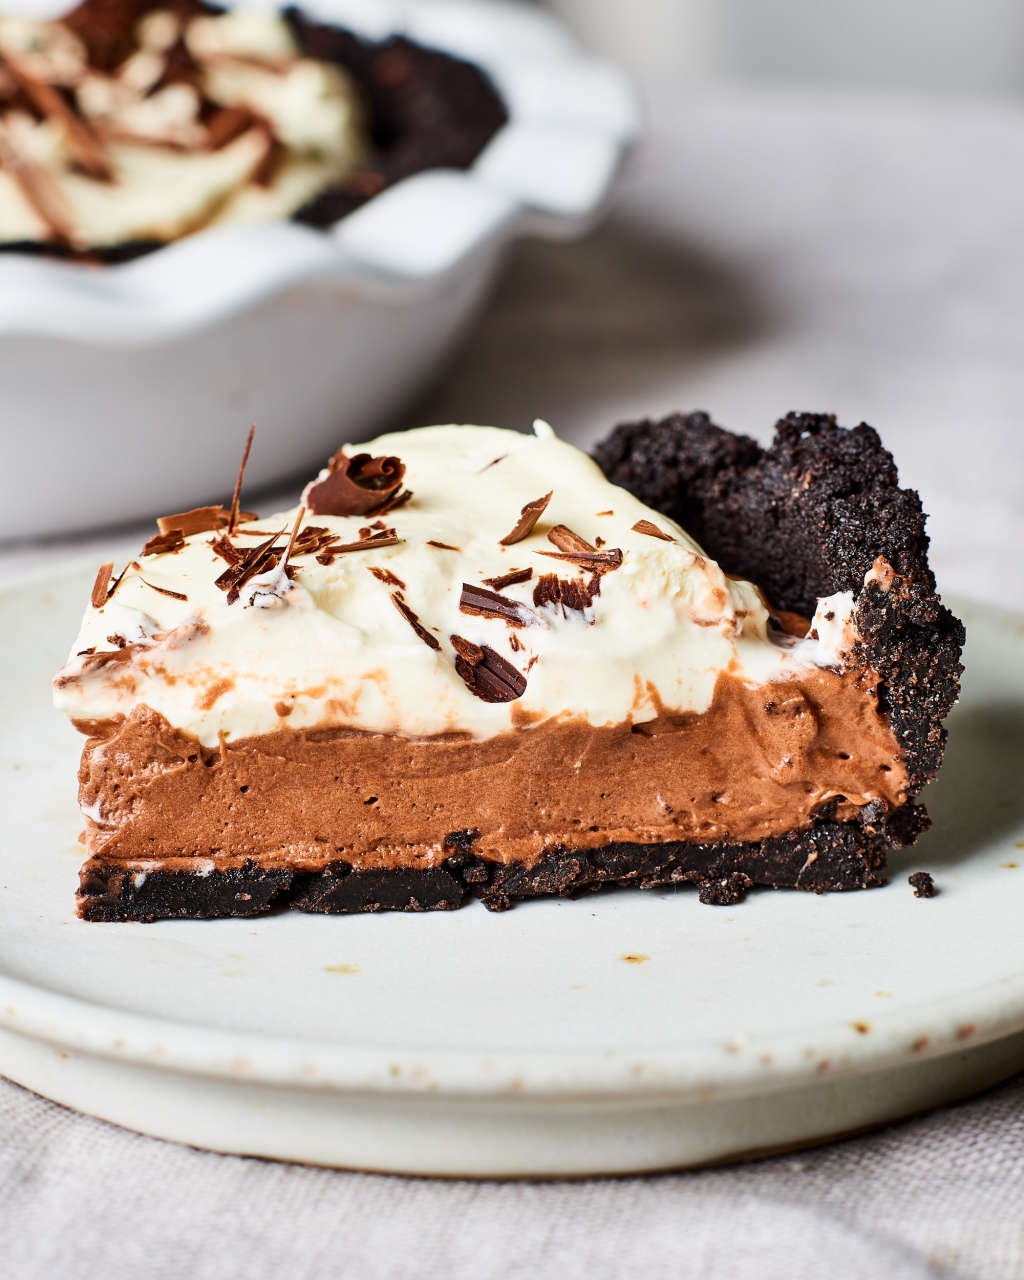 This No-Bake Chocolate Cream Pie Is Impossibly Easy to Make